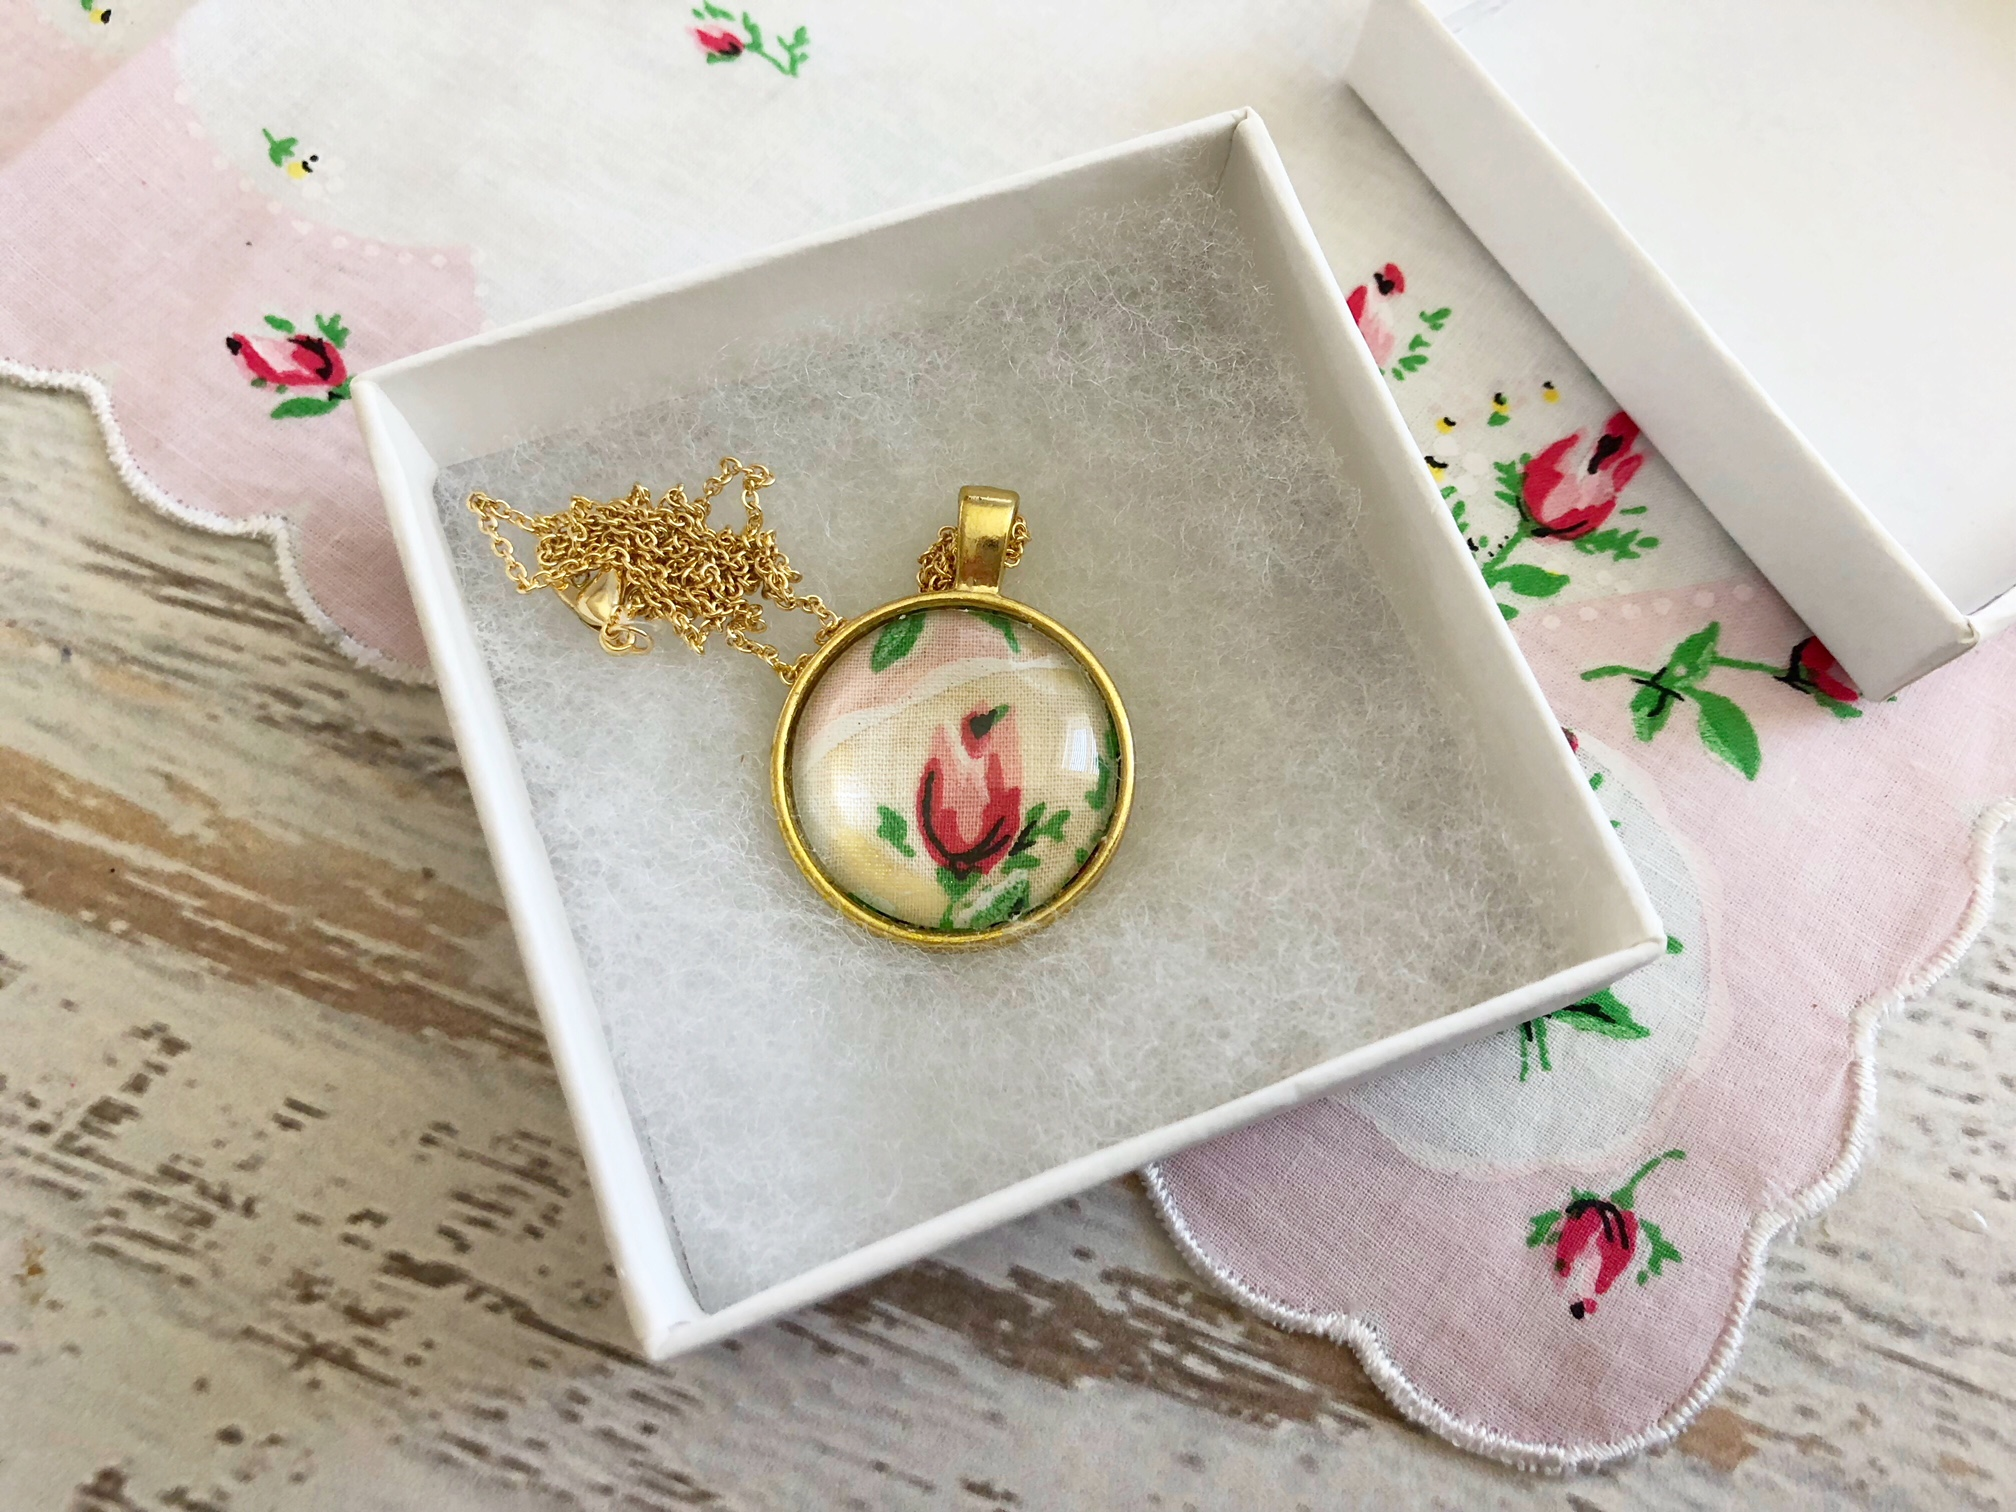 Our Handkerchief Pendant Necklace is a beautiful way to upcycle your favorite handkerchief.